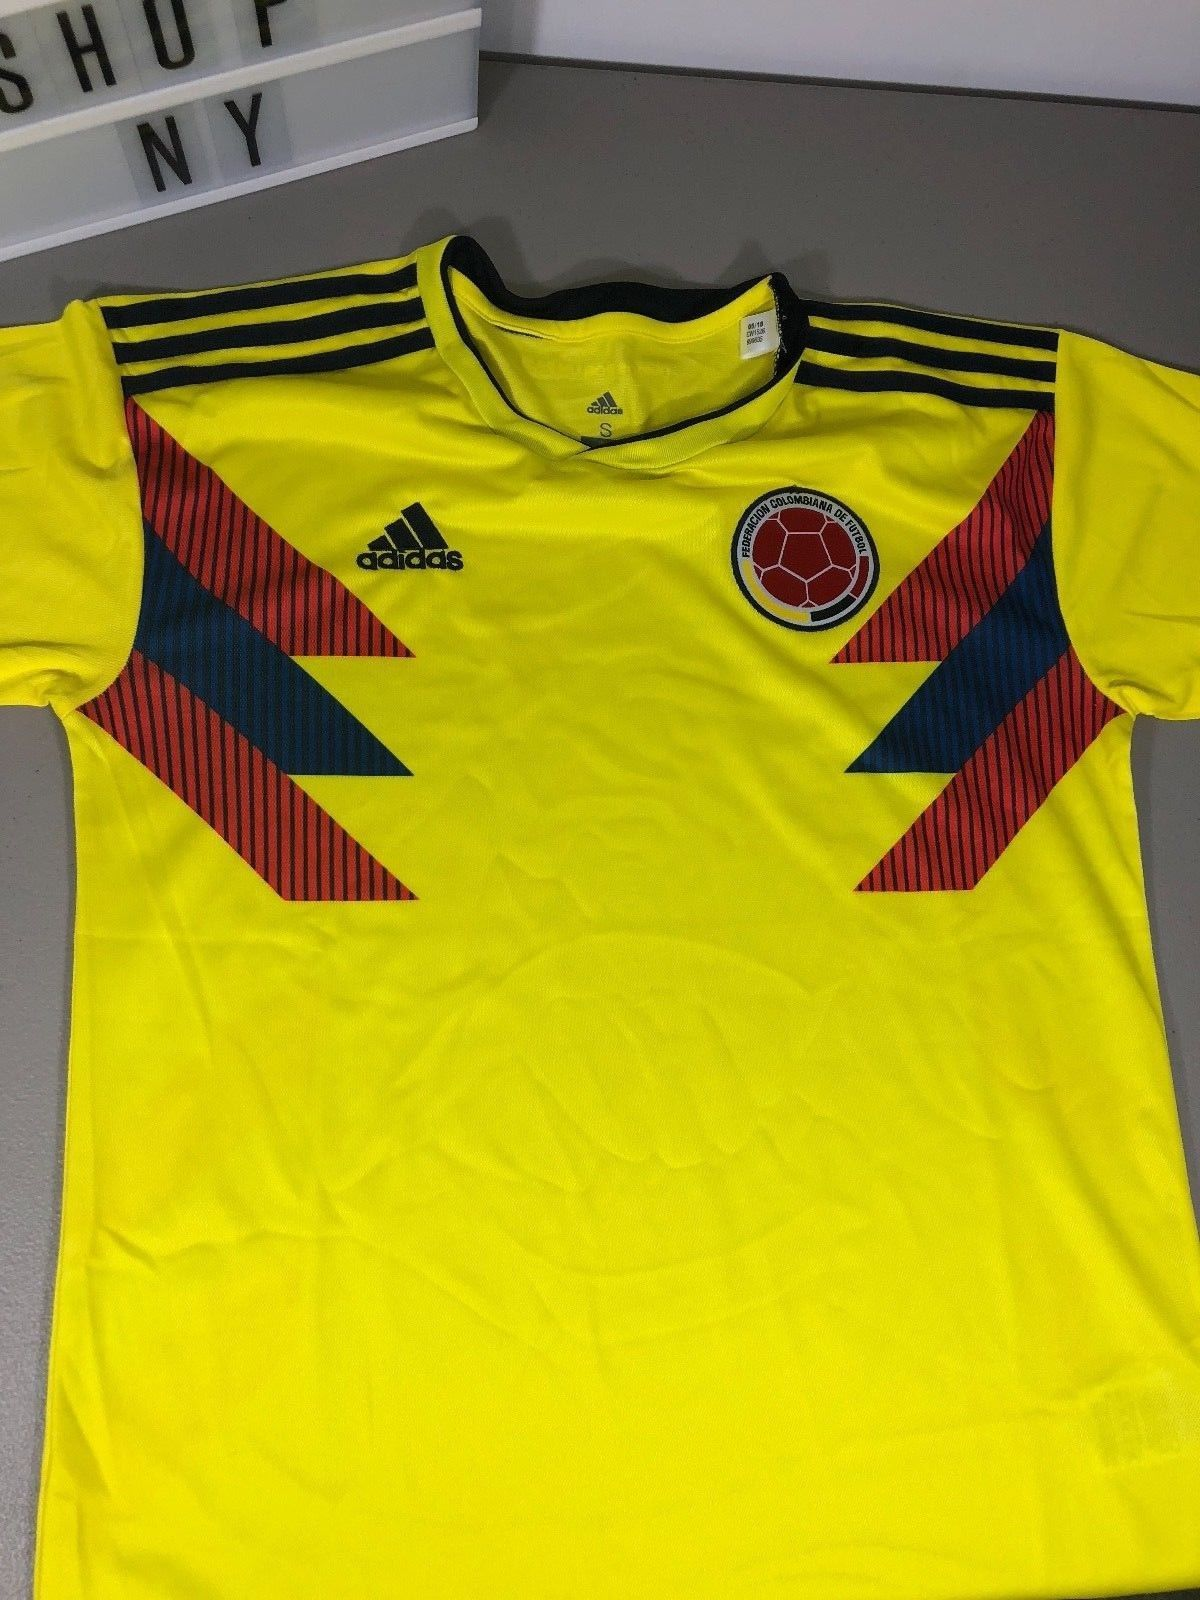 Adidas Mens Colombia Home Jersey World Cup 2018 Small Medium CW1526  Discount Price 54.99 Free Shipping Buy it Now c9948df95